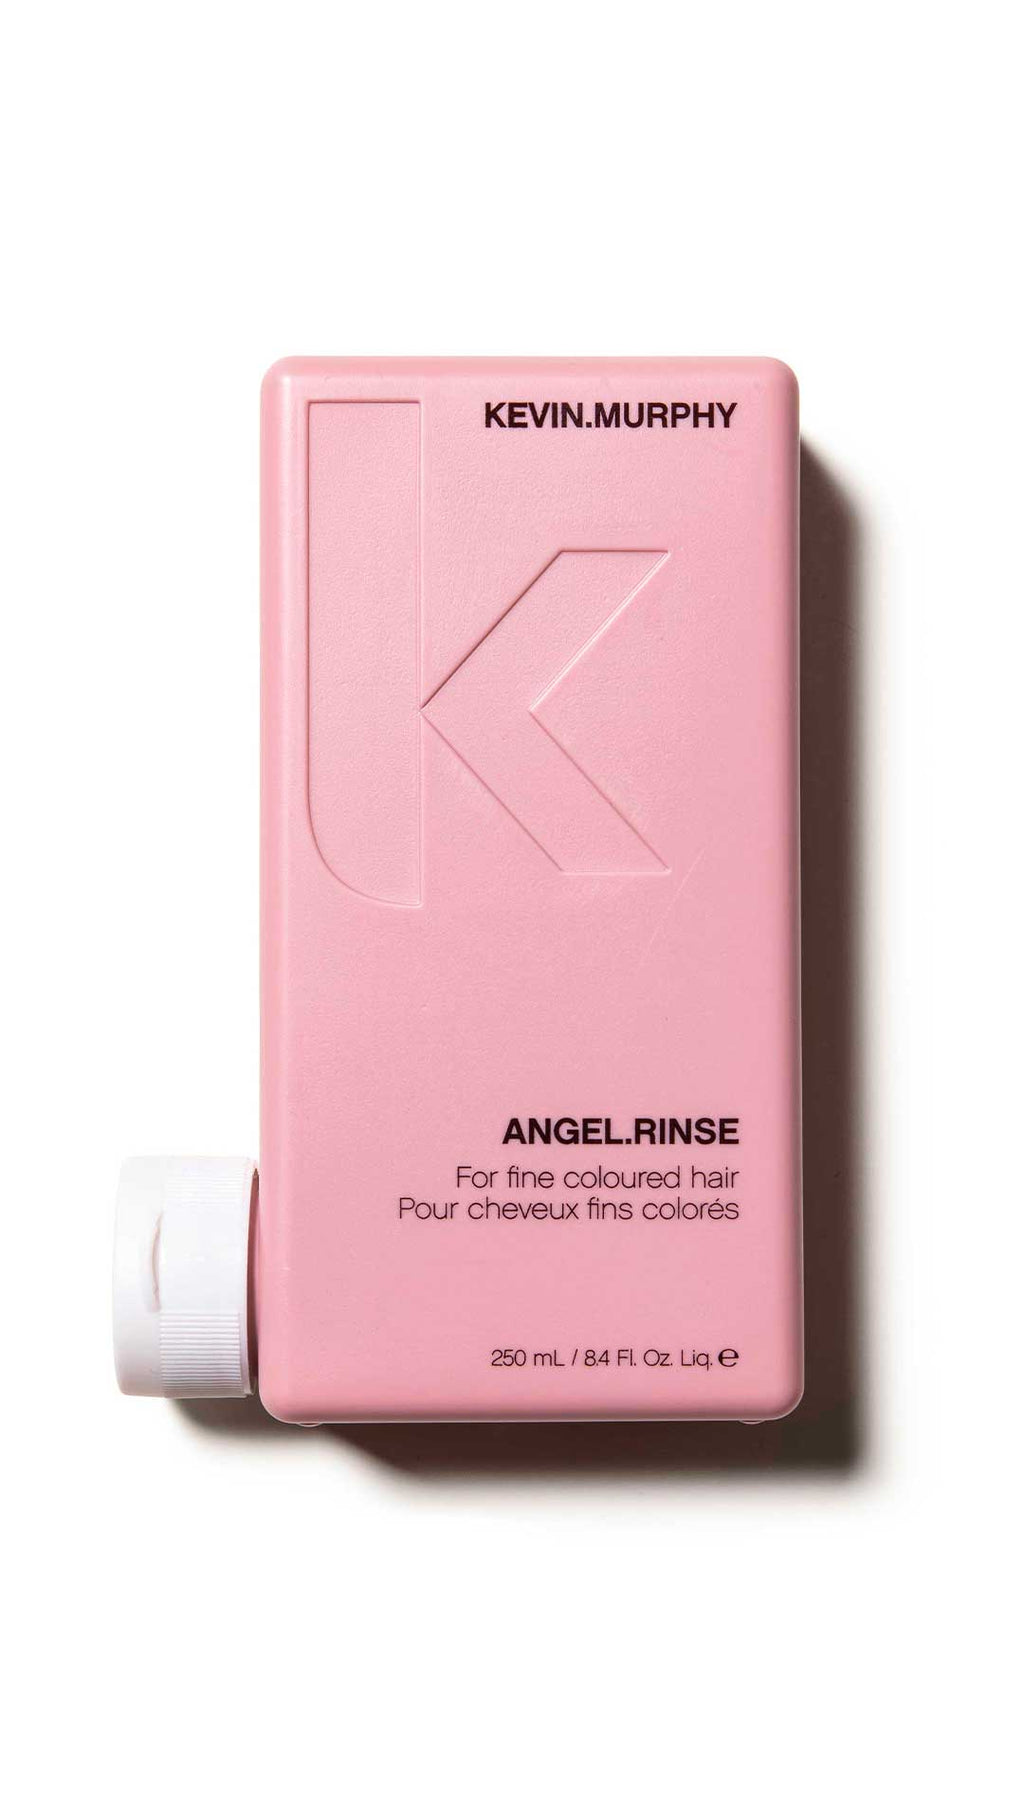 VOLUME ANGEL.RINSE - KEVIN MURPHY